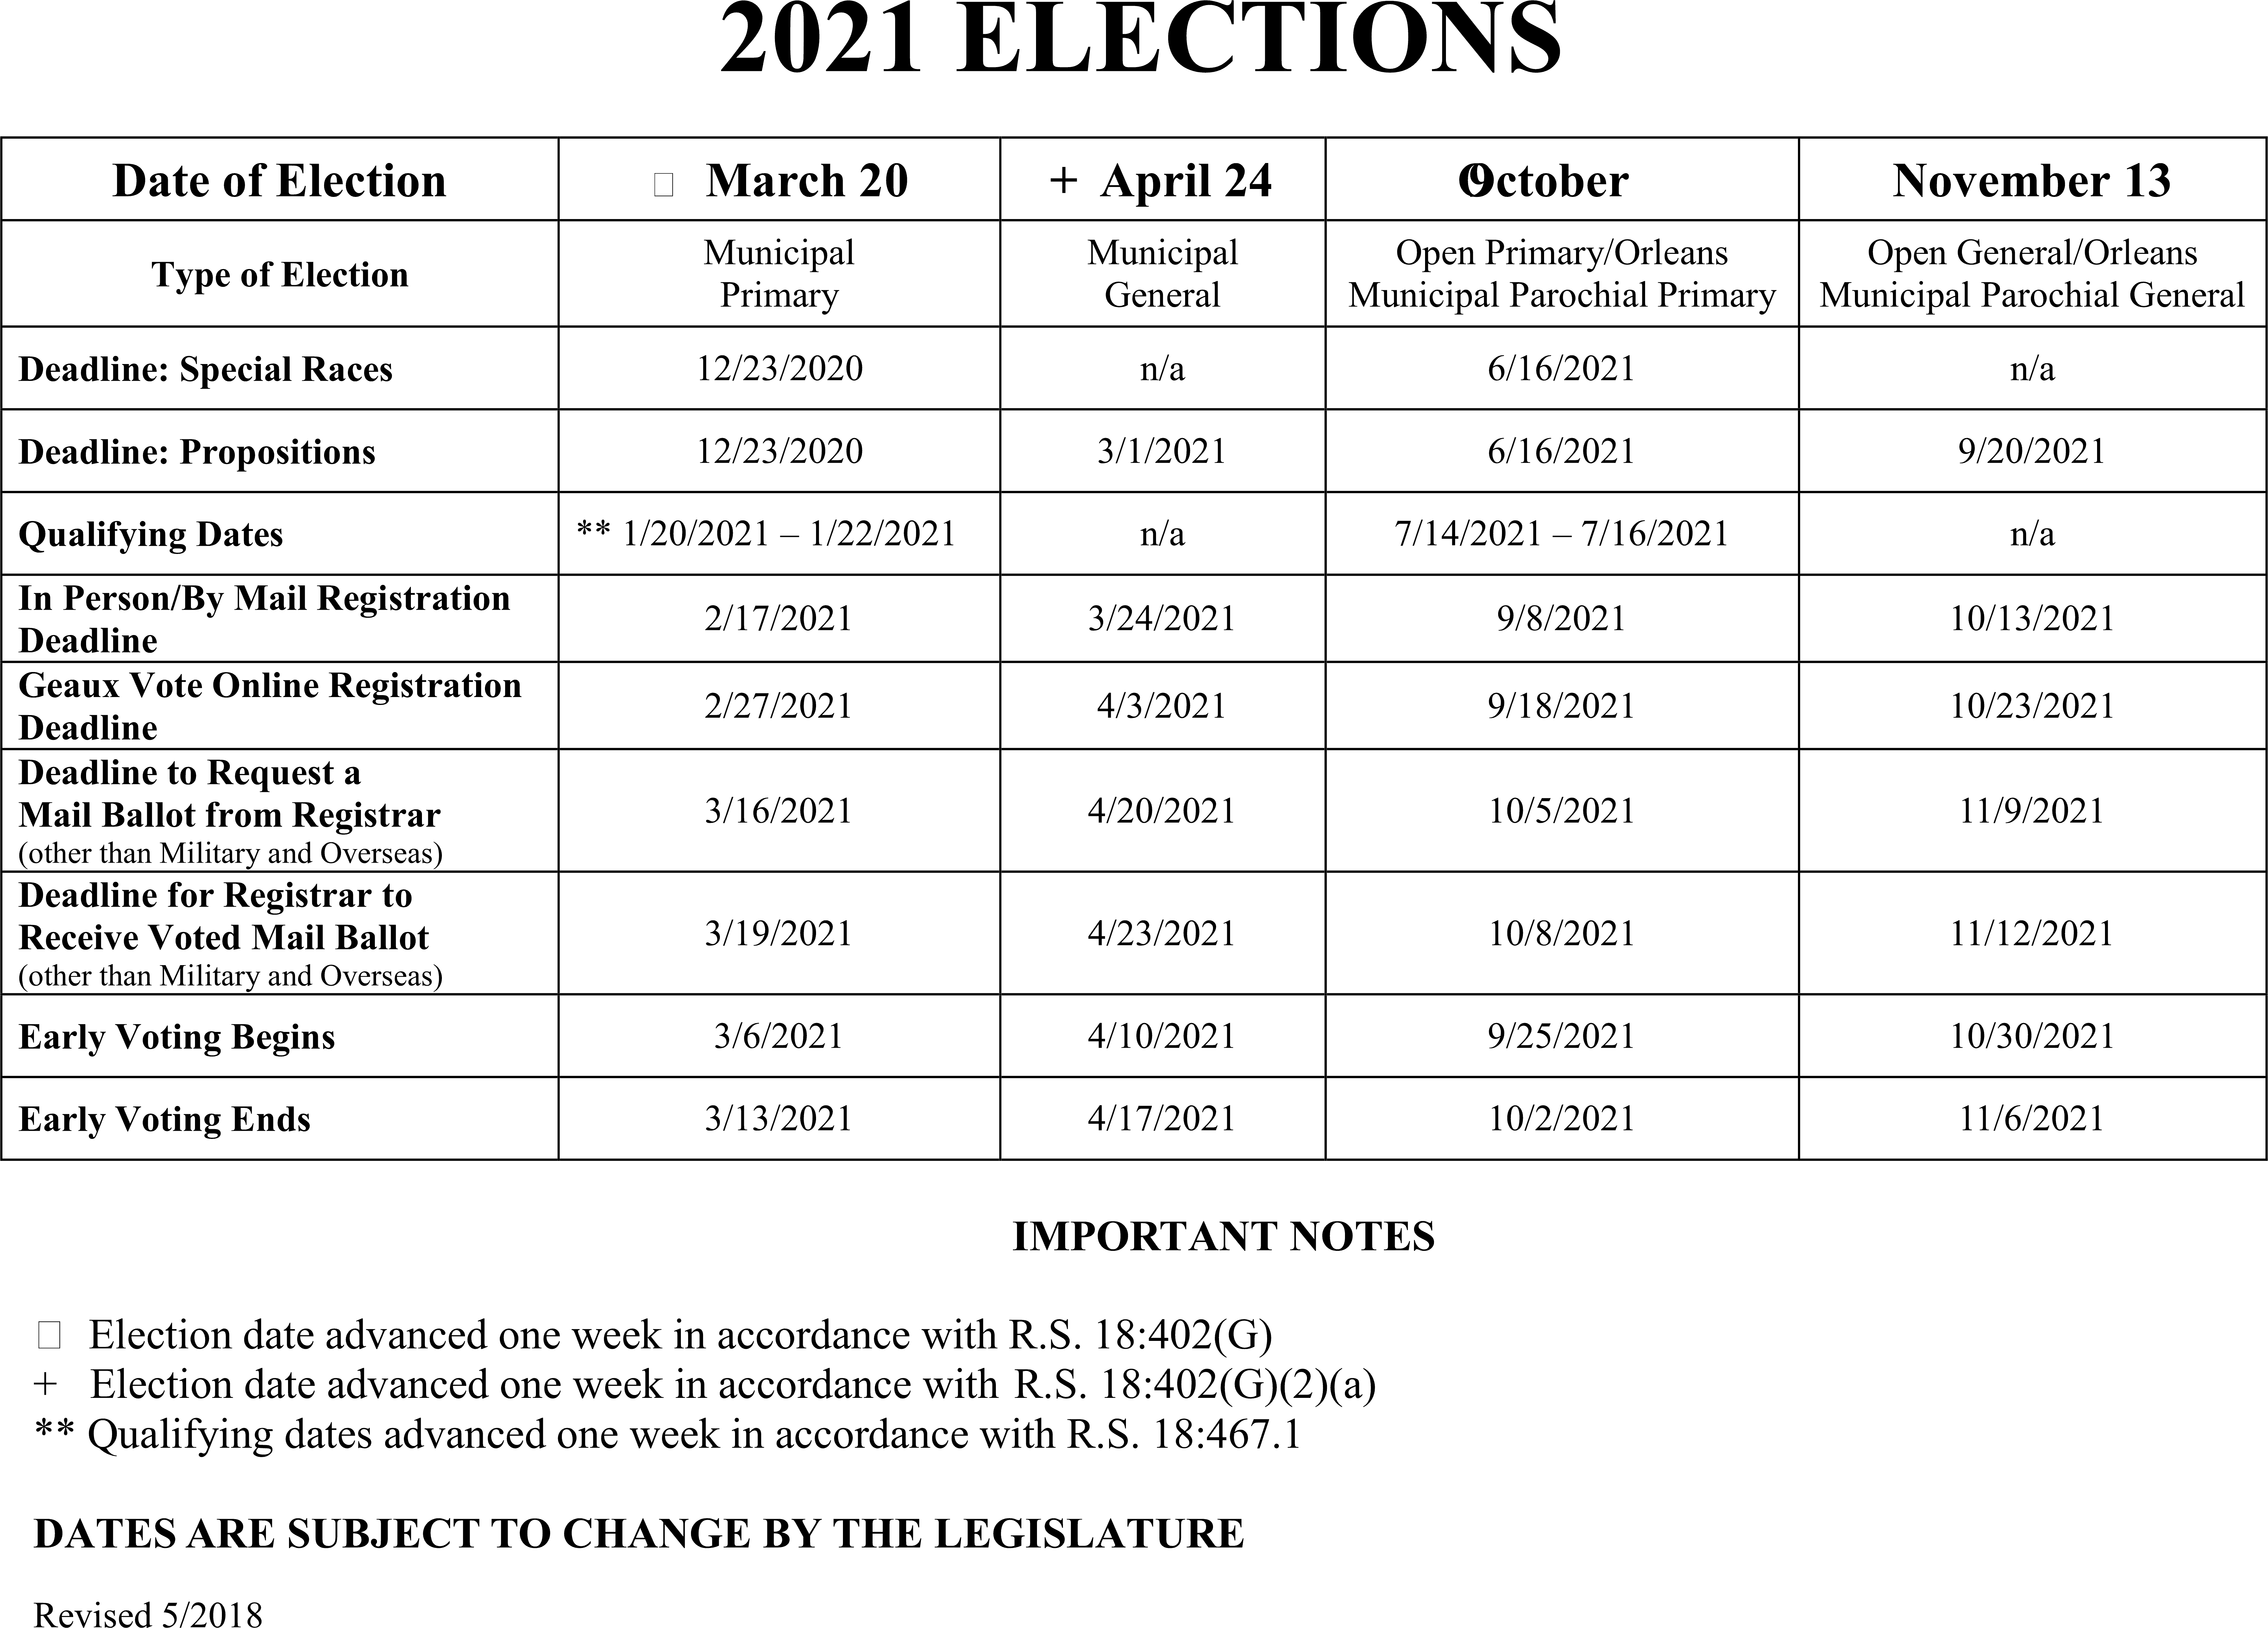 2021 Elections Dates